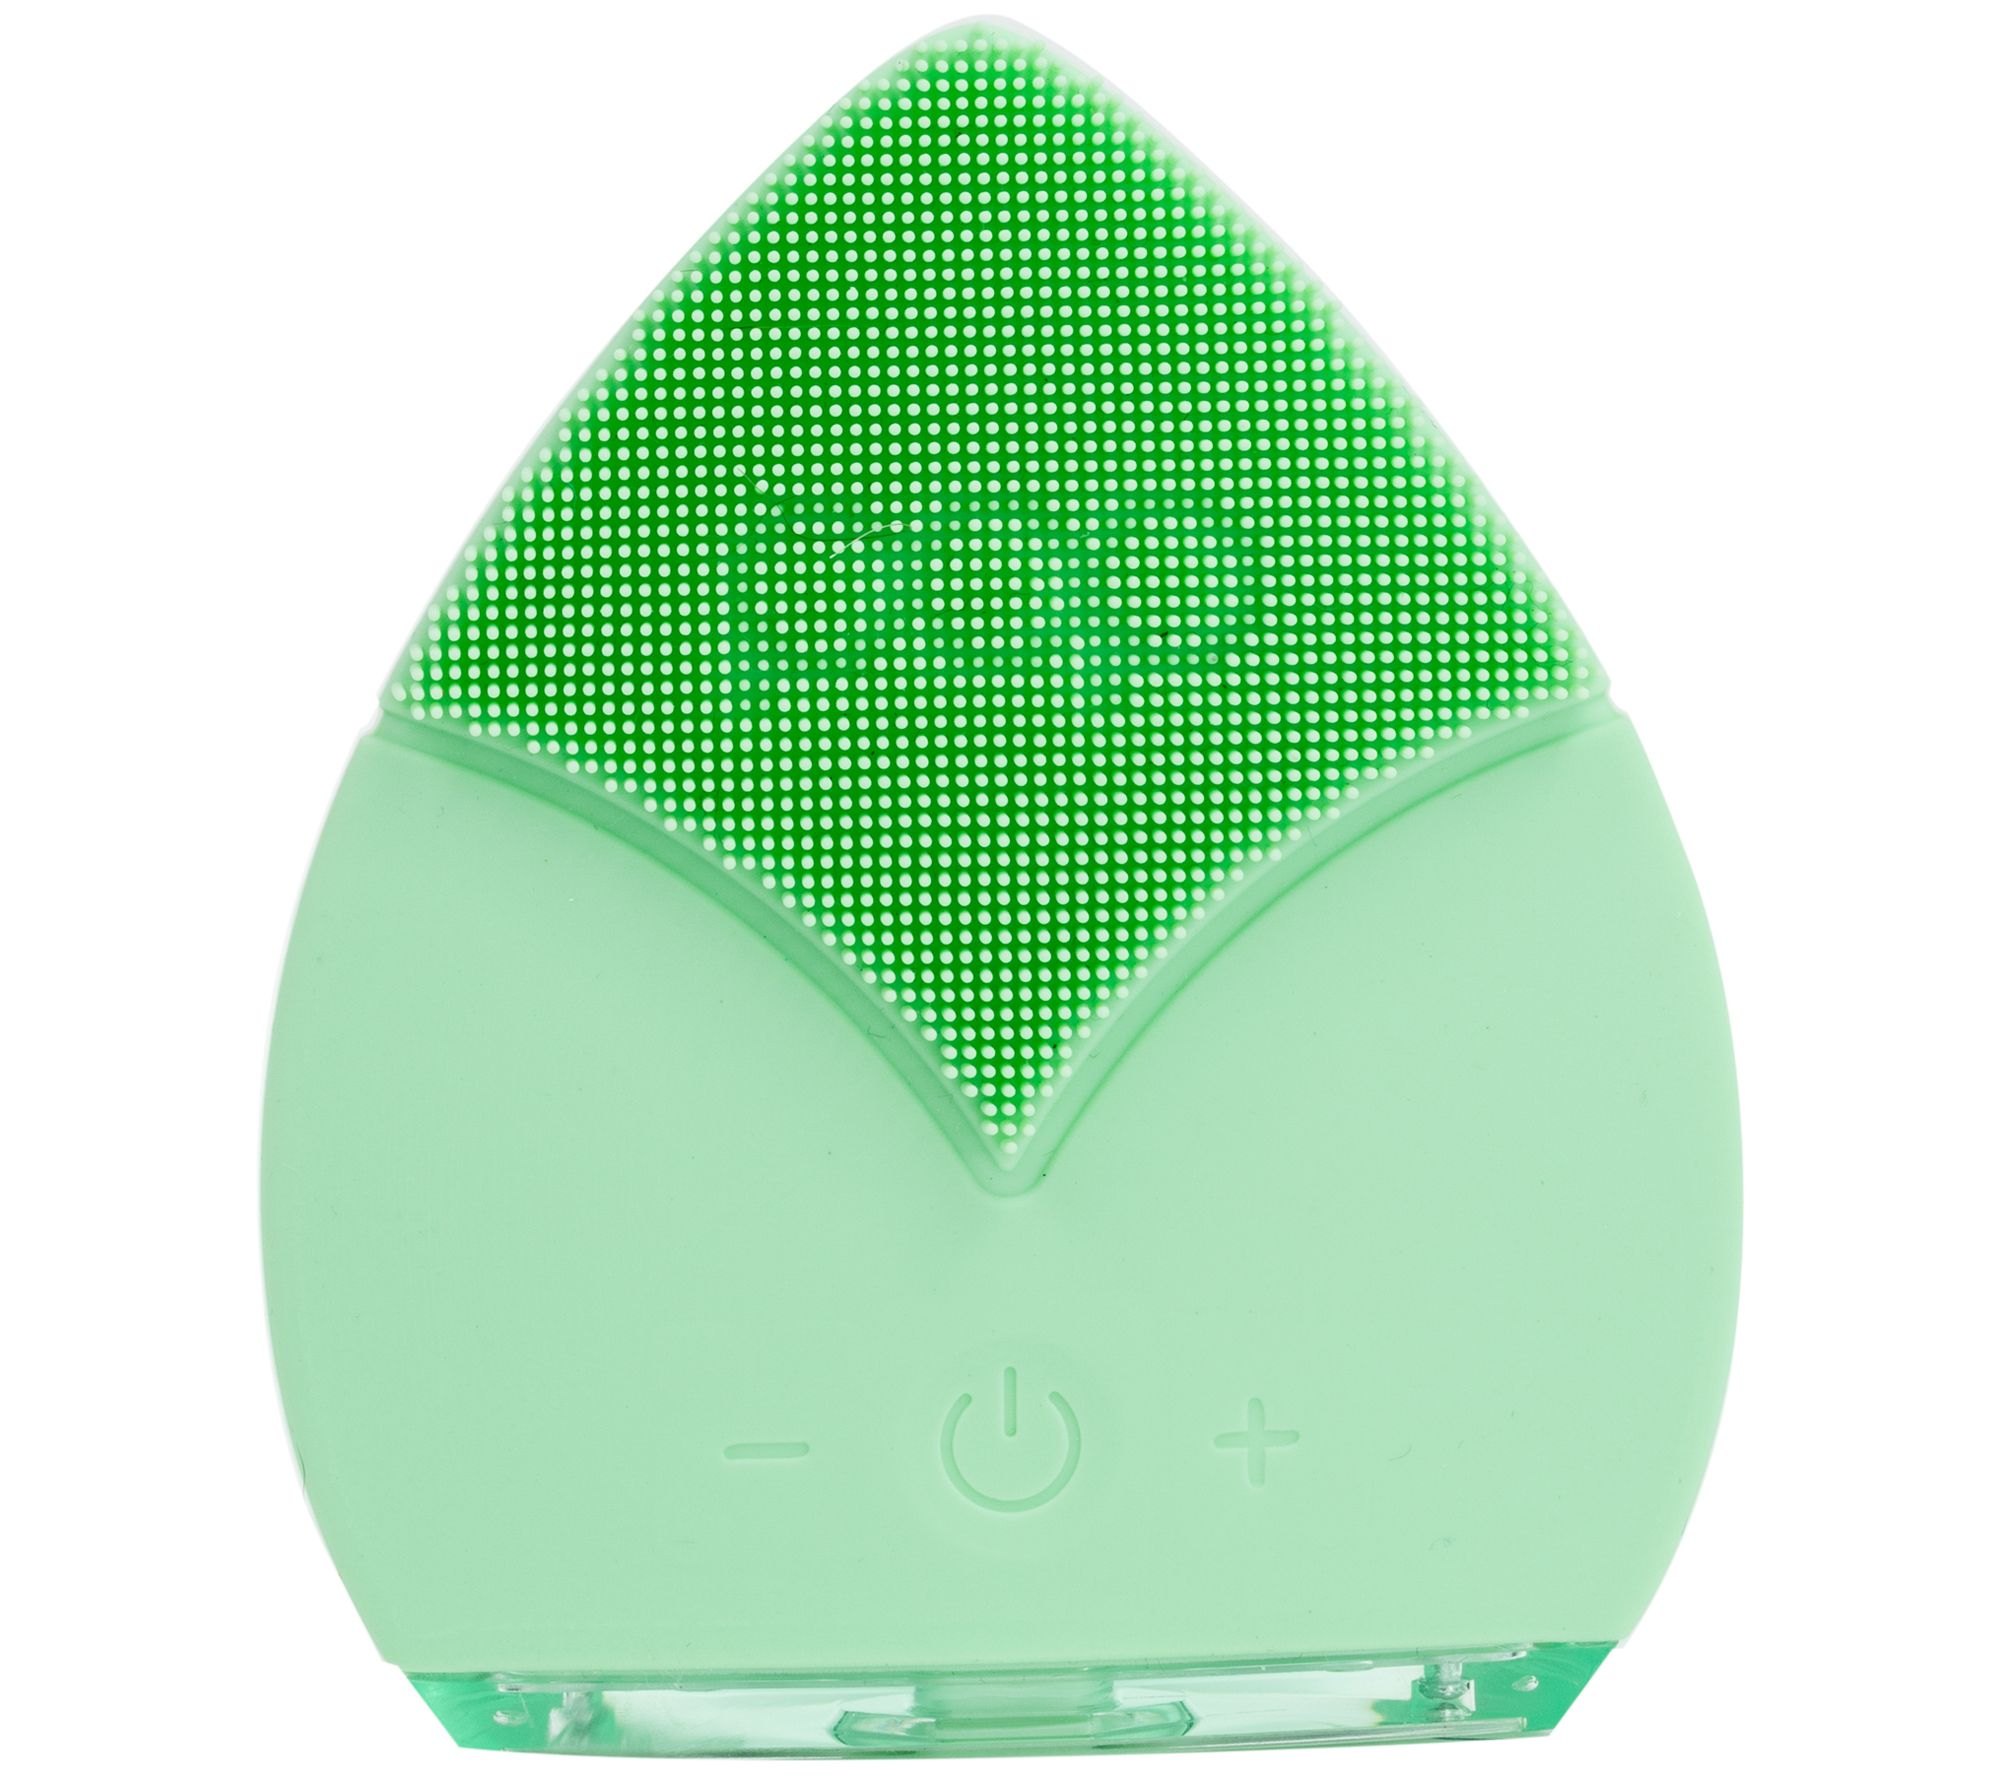 Pop Sonic Leaf Reviews >> Pop Sonic Leaf Sonic Facial Cleansing Device Page 1 Qvc Com